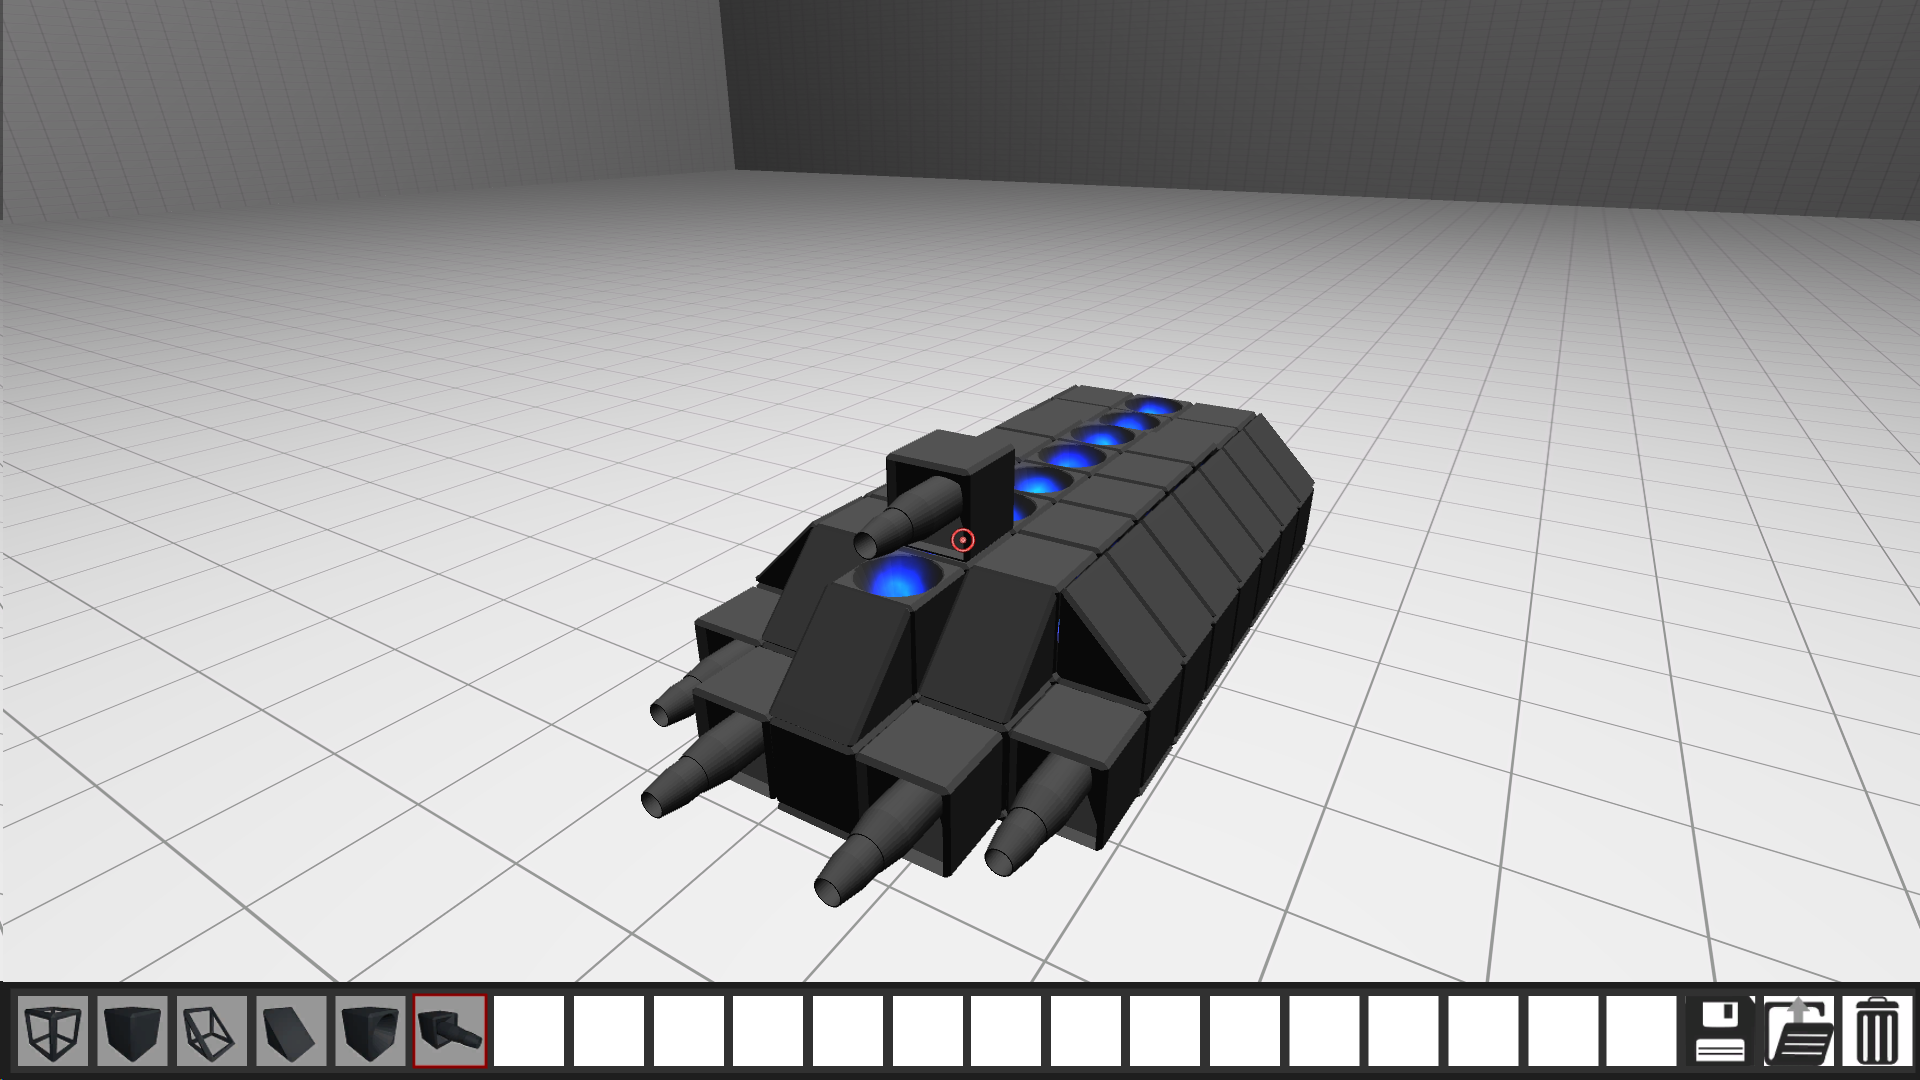 Hangar, building a ship image - Disorder in Space - Indie DB